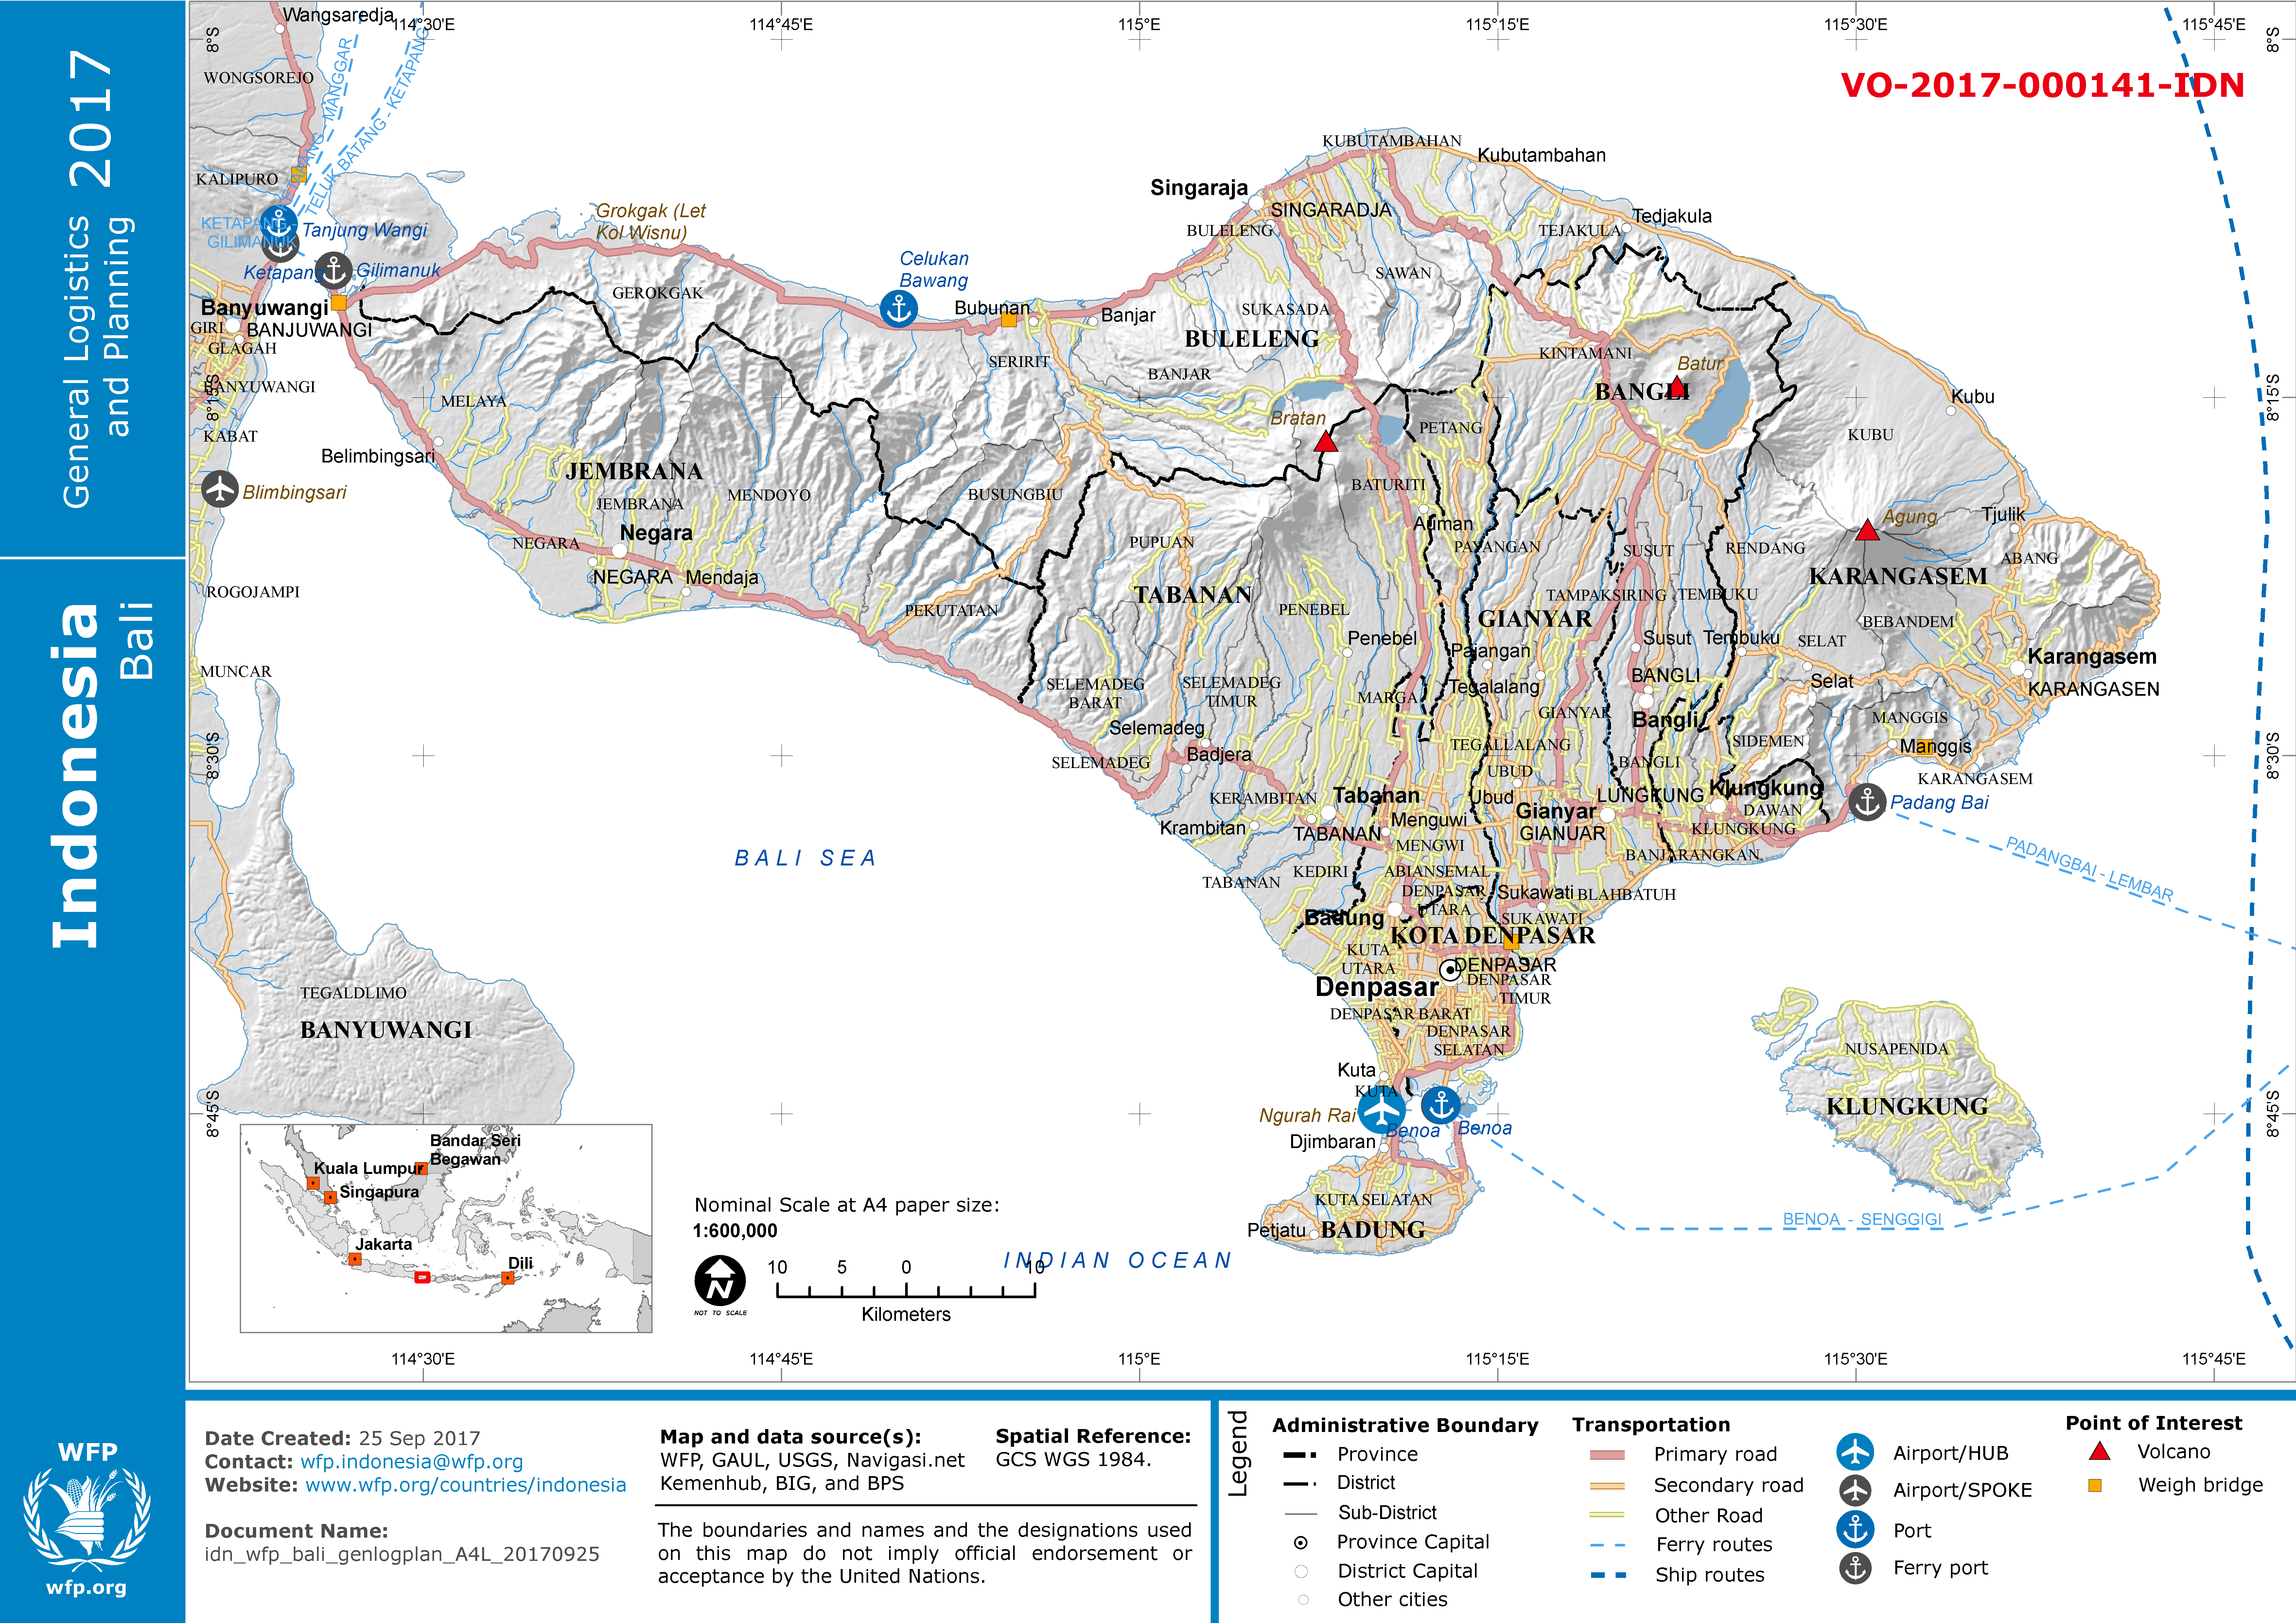 Indonesia 2017 General logistics and planning map Bali WFP GeoNode